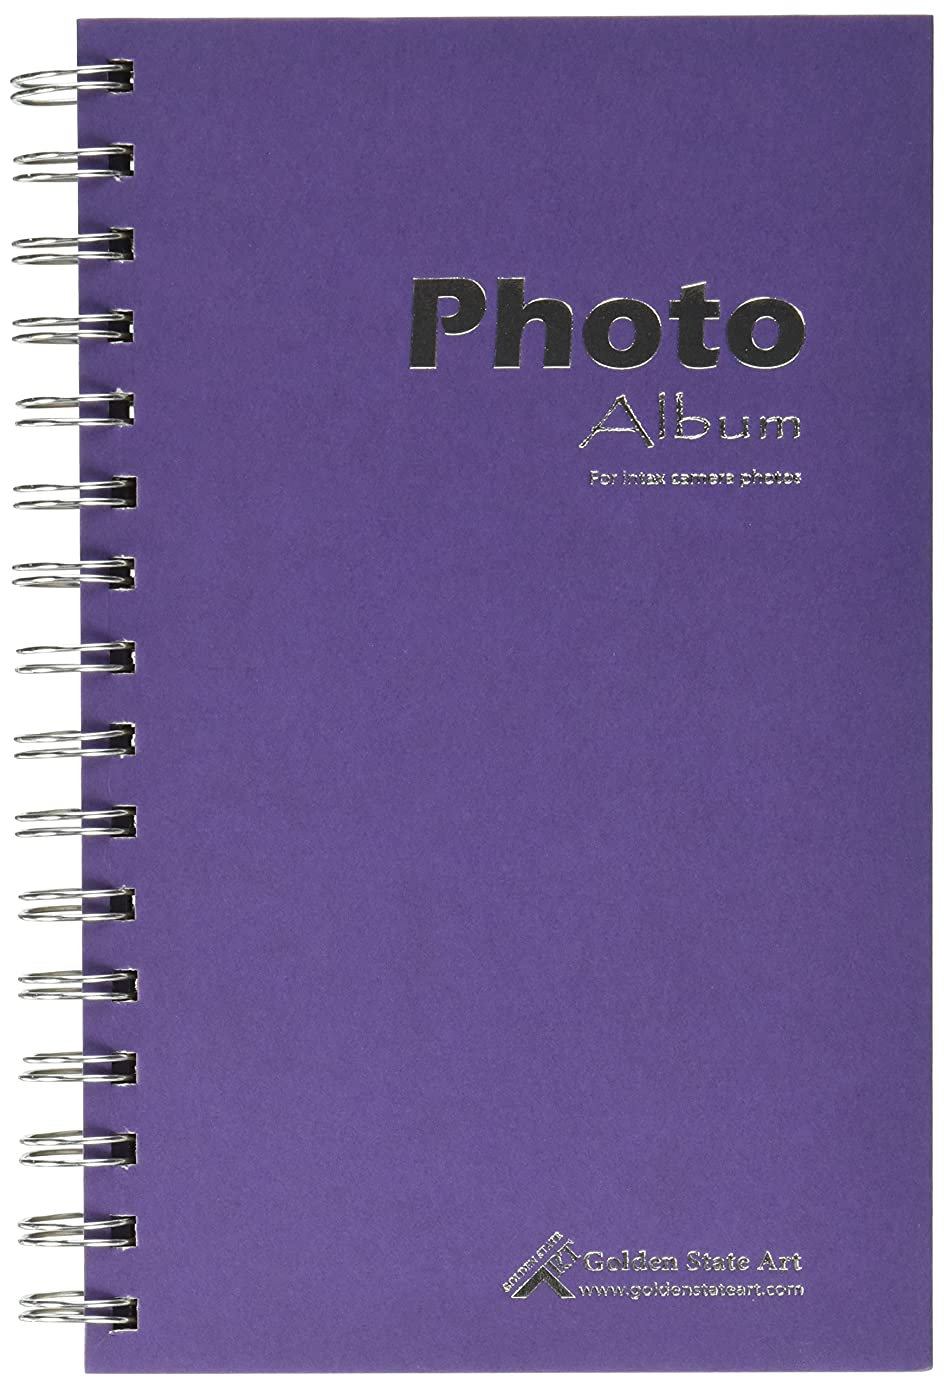 Golden State Art, Purple Photo Album Book Style, 60 Pockets, Instax Frames Collection, for Camera Fuijufilm Instax Mini 7S 8 70 90 25 50S 8+ Film